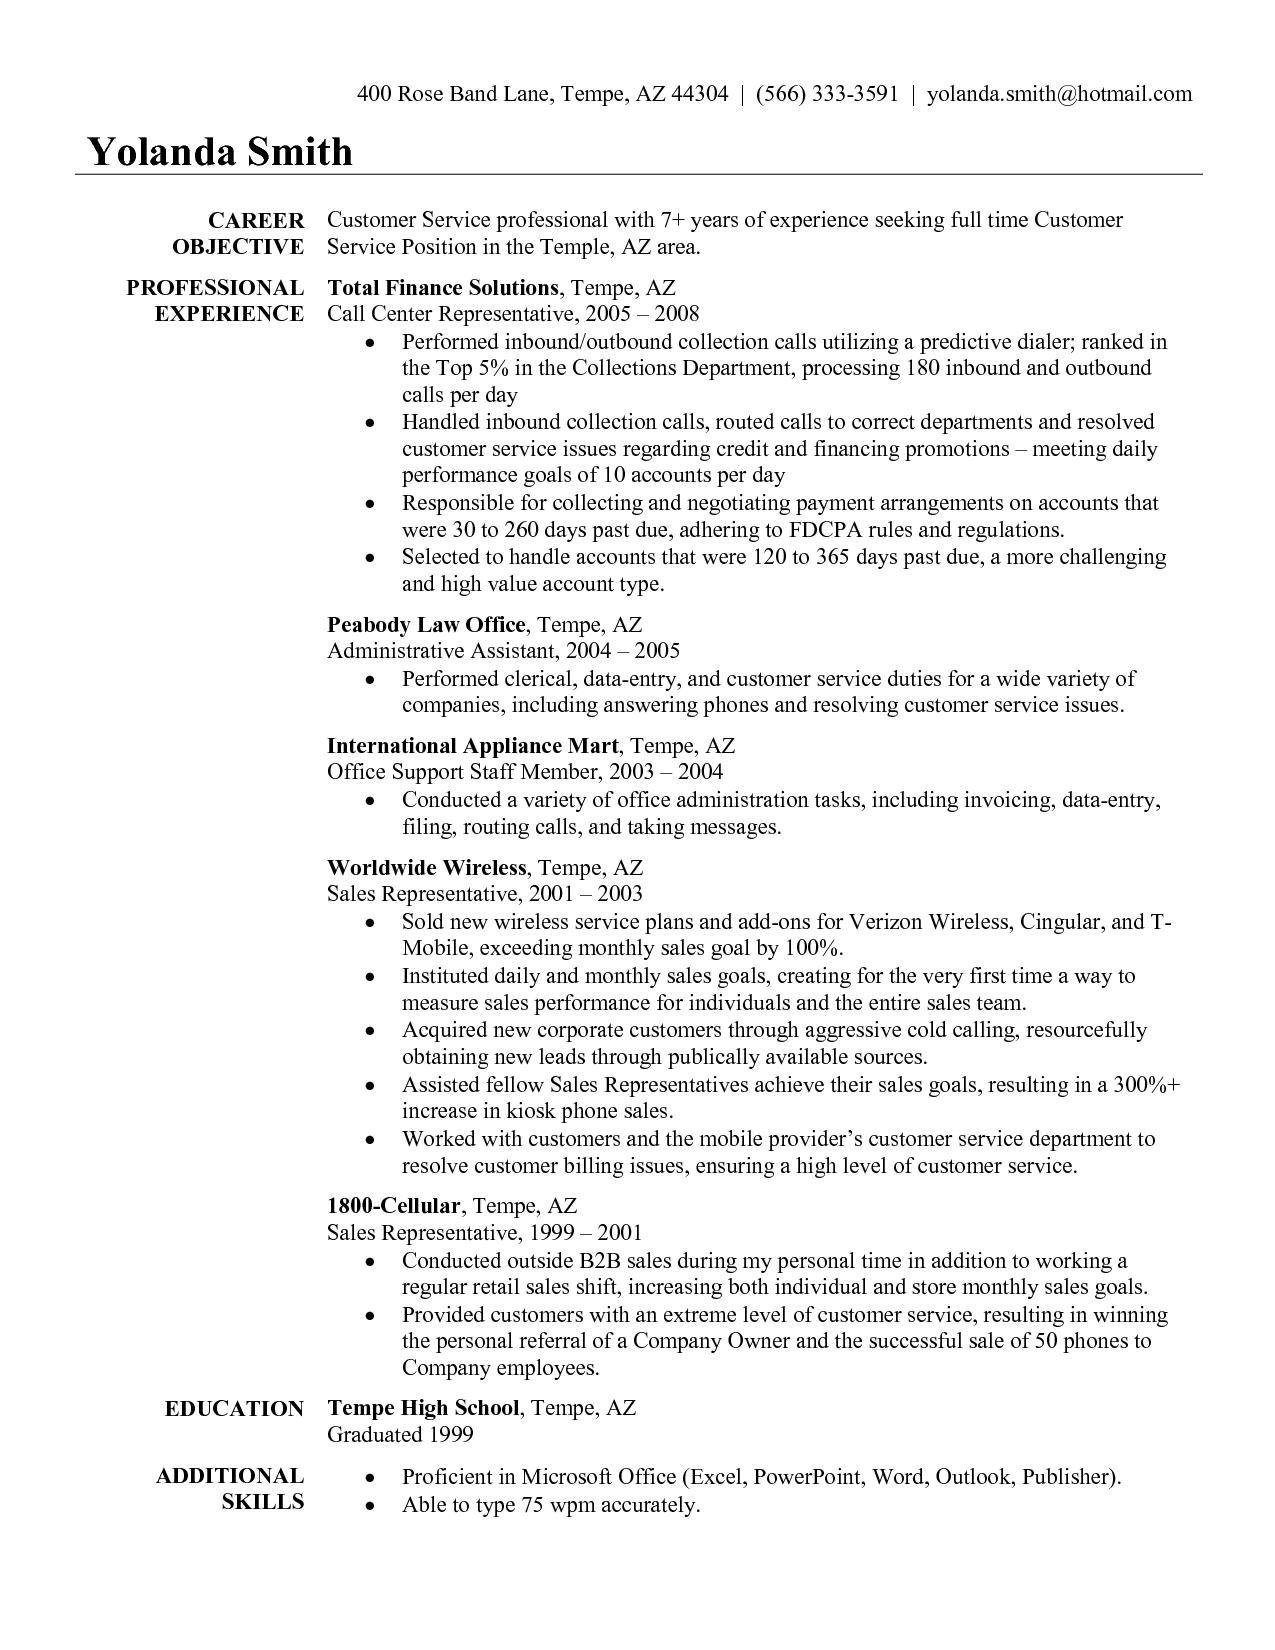 Resume Objective For Retail Traffic Customer Resume Examplescustomer Service Resume Examples